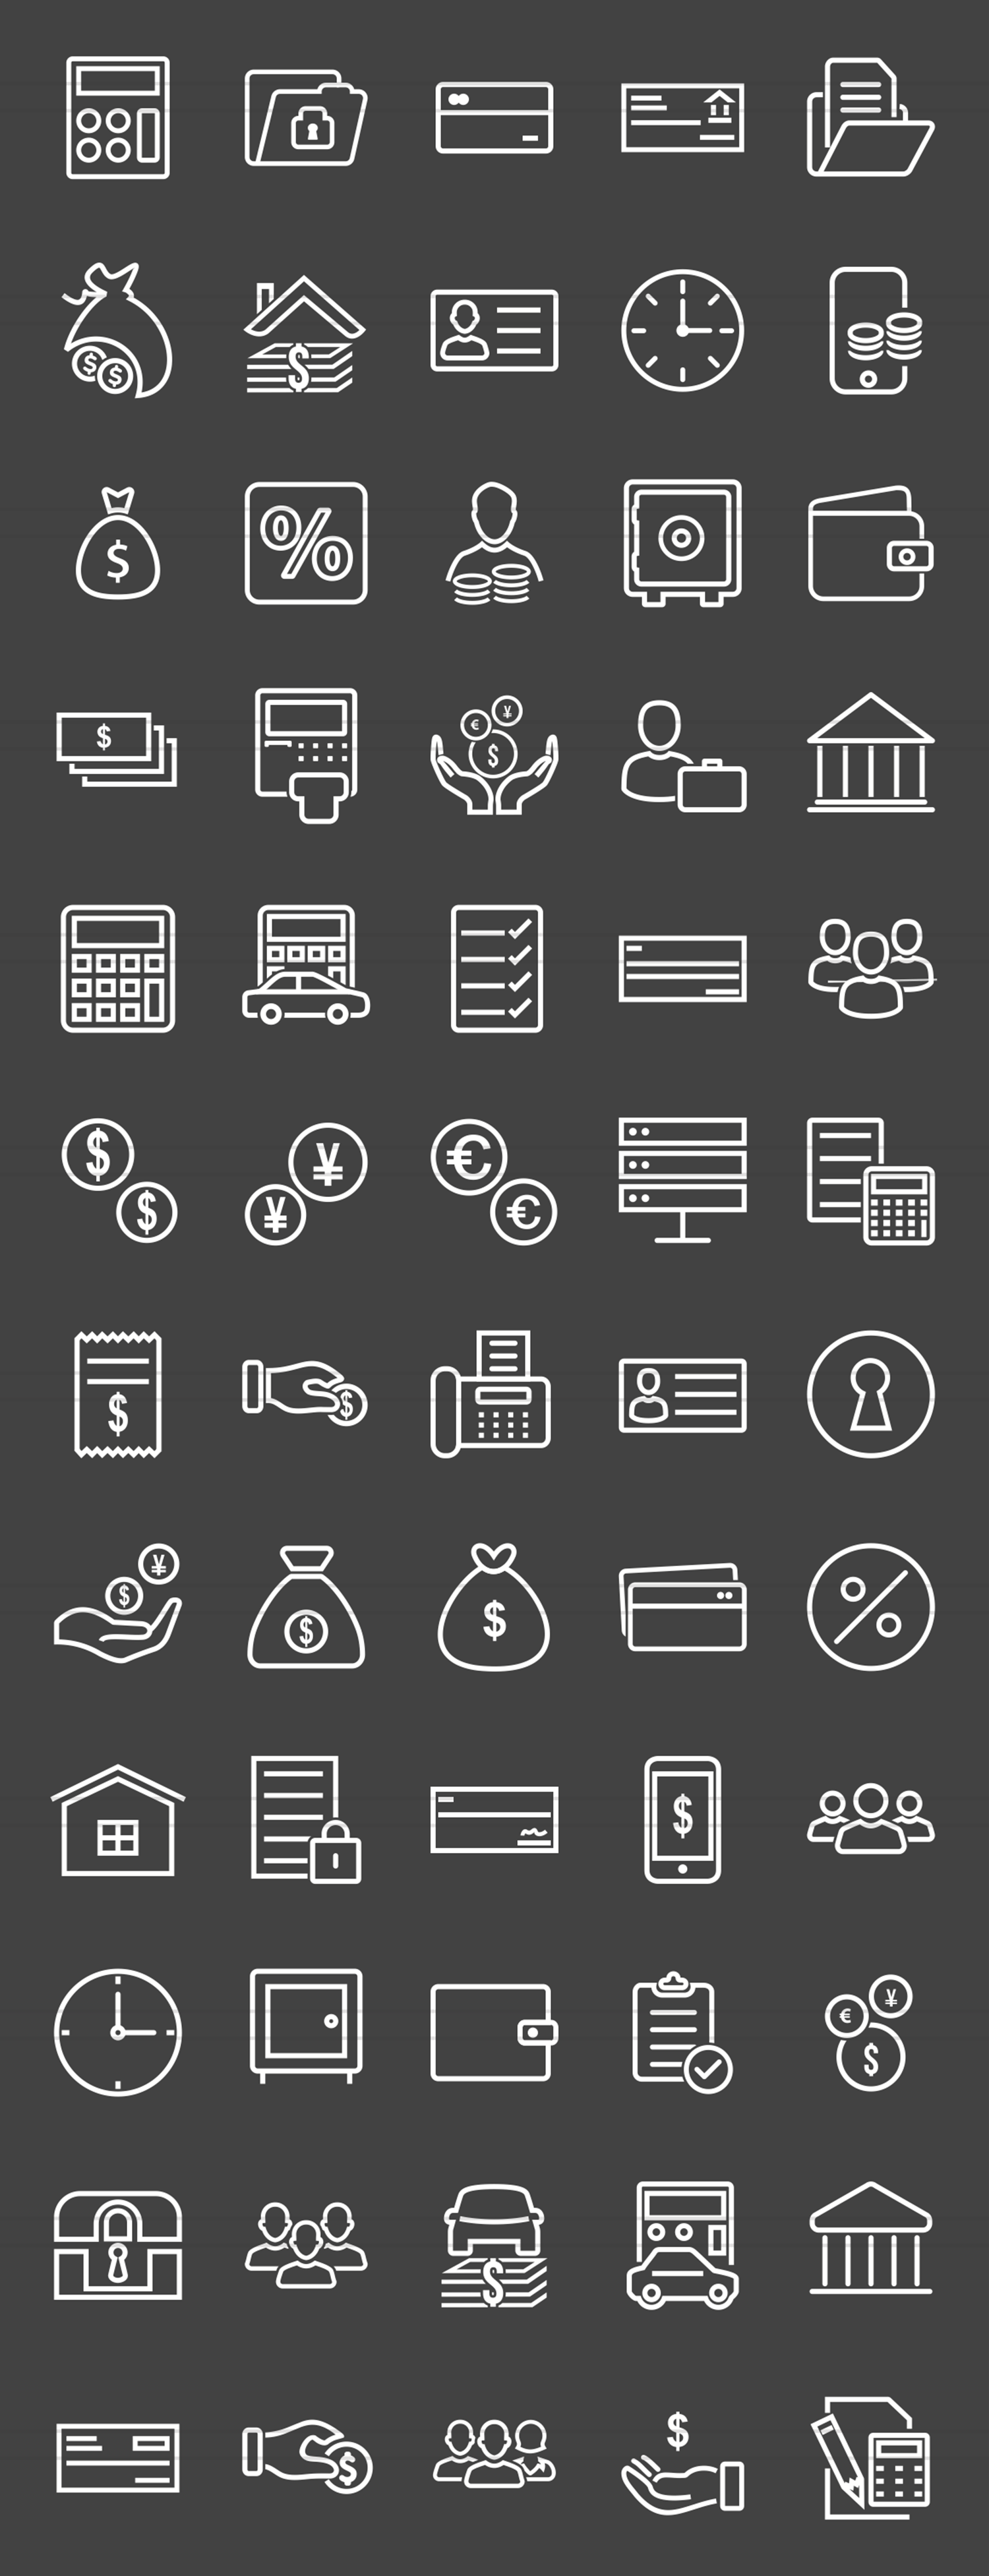 60 Banking Line Inverted Icons example image 2